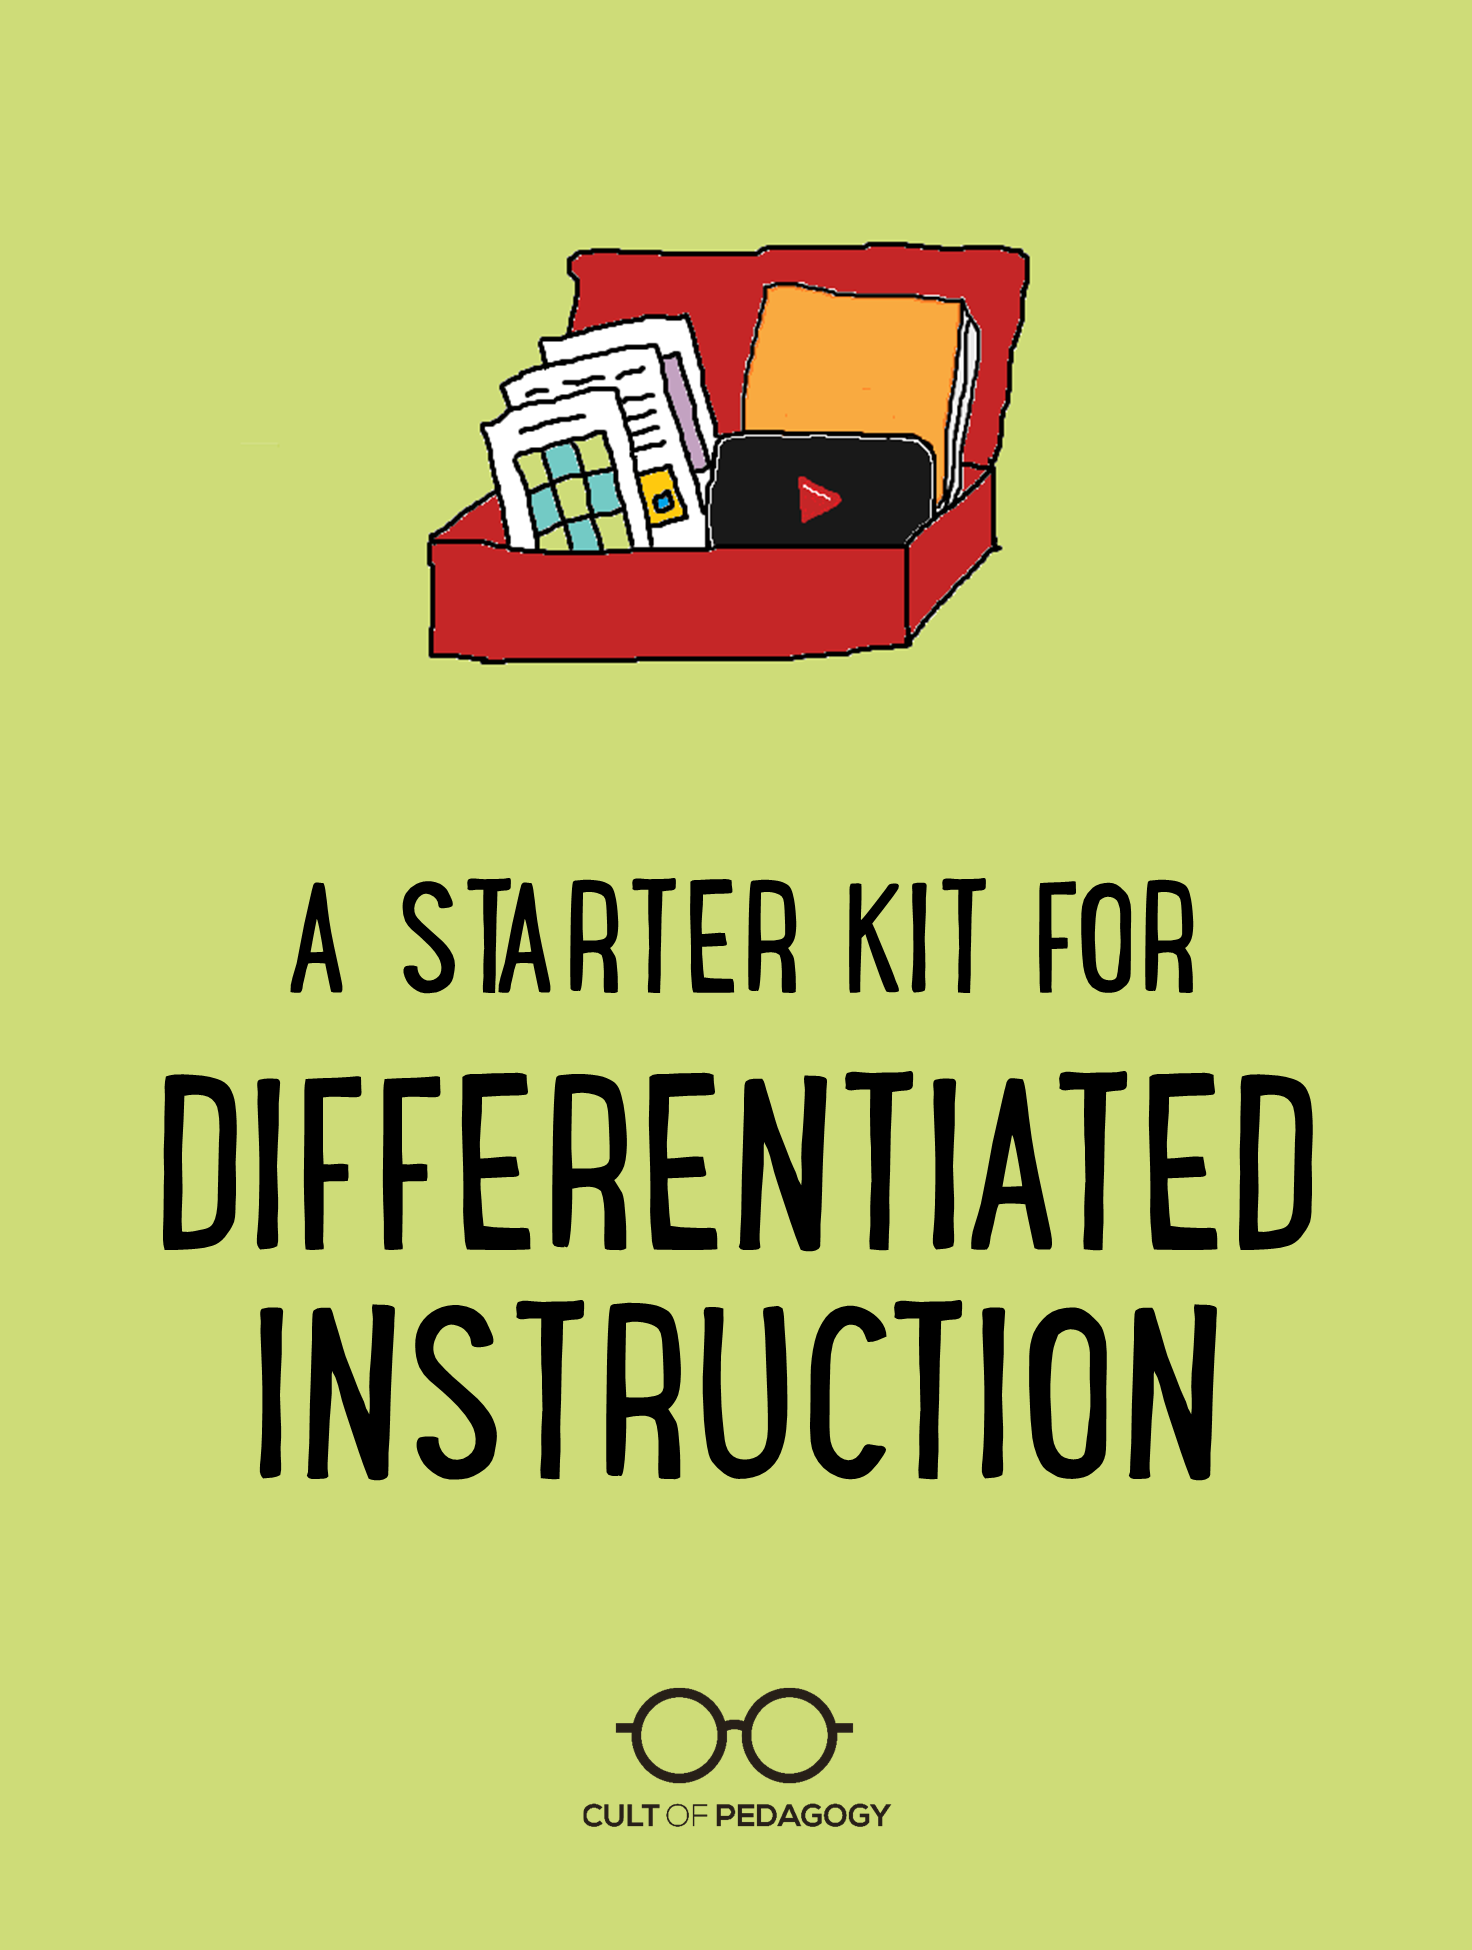 Textbook clipart classroom instruction. A starter kit for